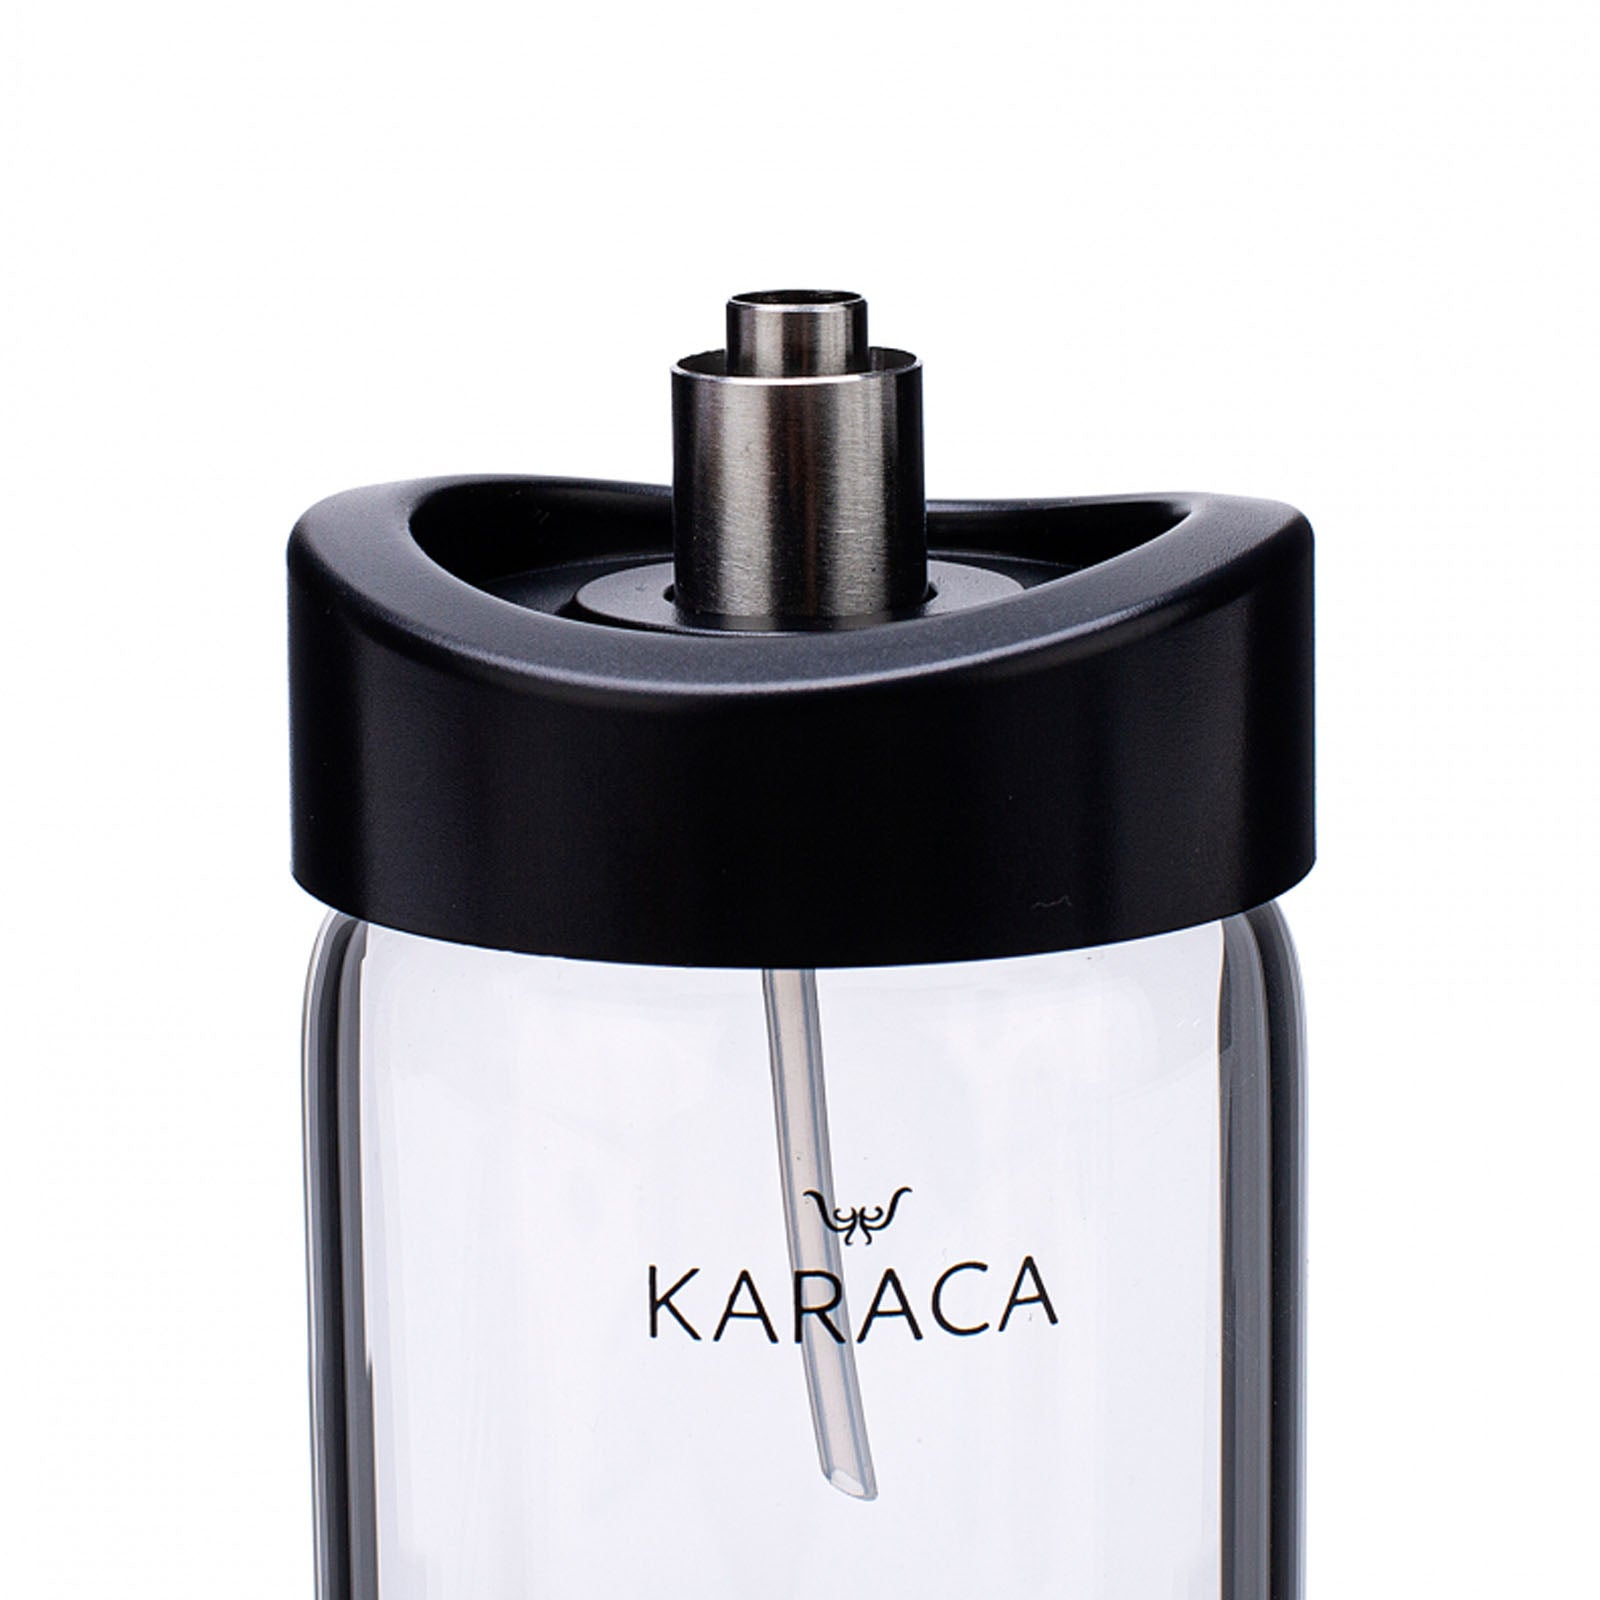 Karaca Wave Oil Vinegar 153.03.07.7788